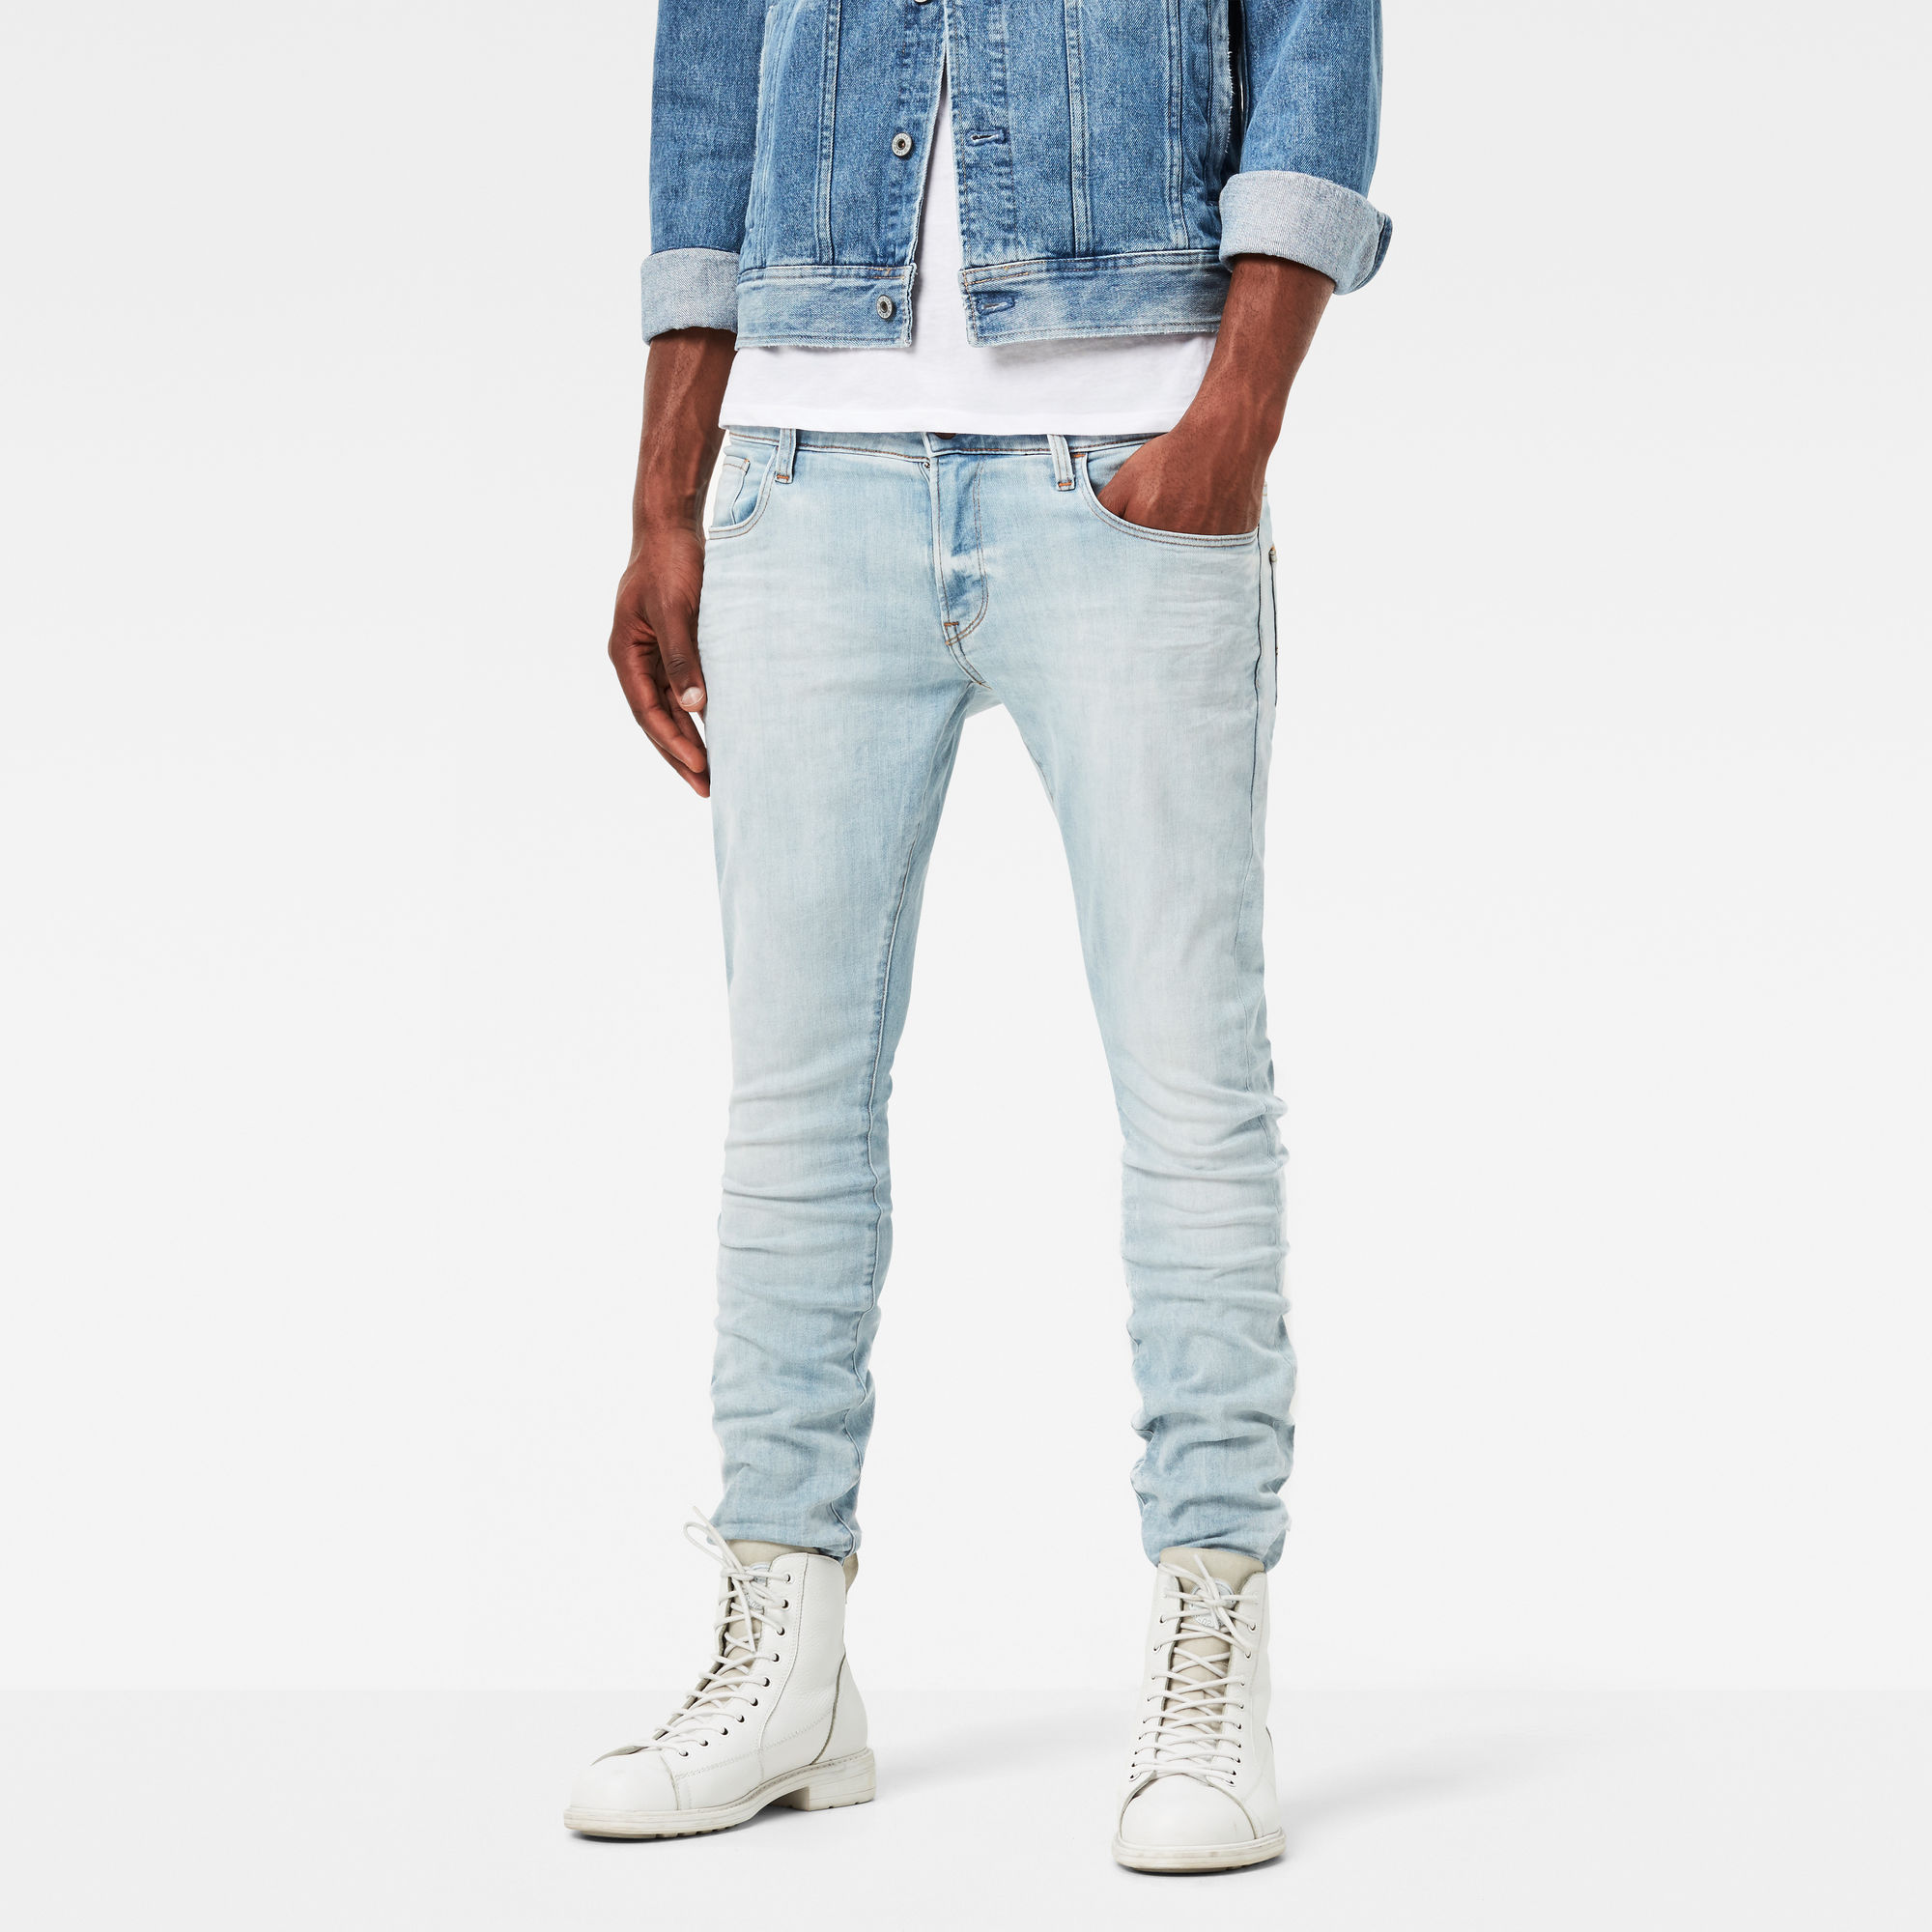 Image of G Star Raw 3301 Super Slim Jeans